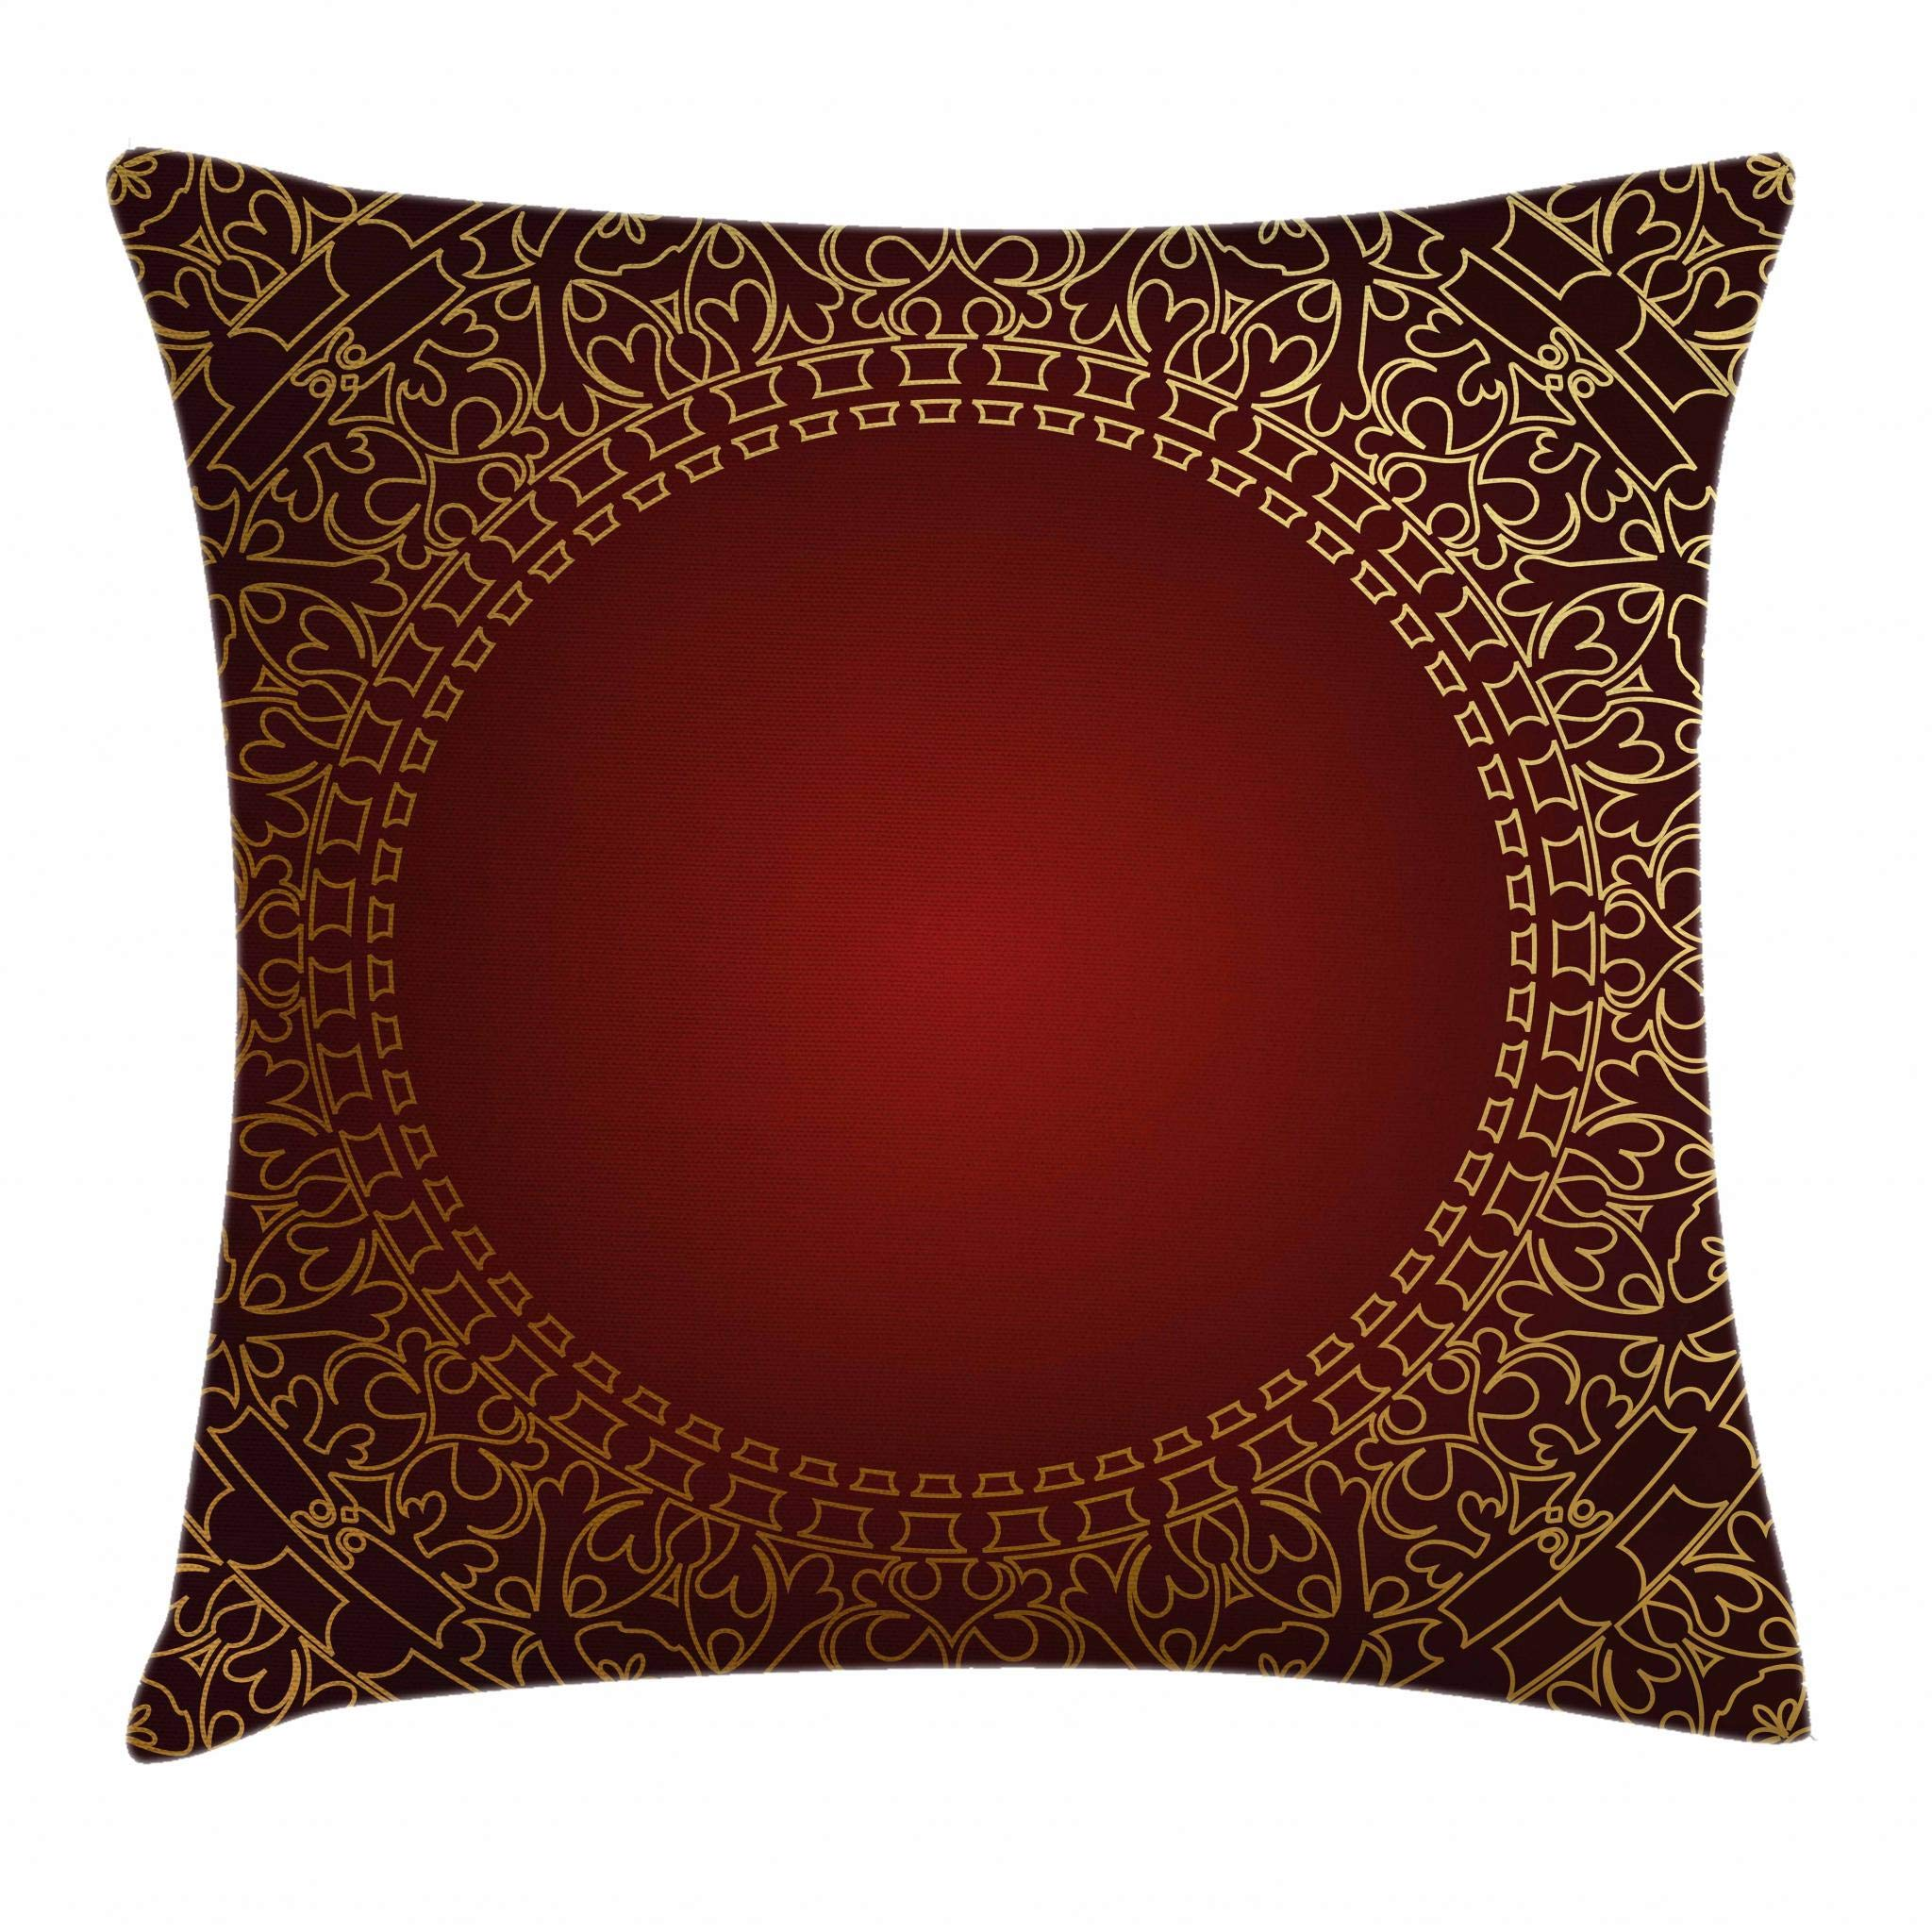 Ambesonne Maroon Throw Pillow Cushion Cover, Vintage Frame with Eastern Motifs Traditional Retro Classic Art, Decorative Square Accent Pillow Case, 20 X 20 Inches, Earth Yellow Pale Yellow Ruby